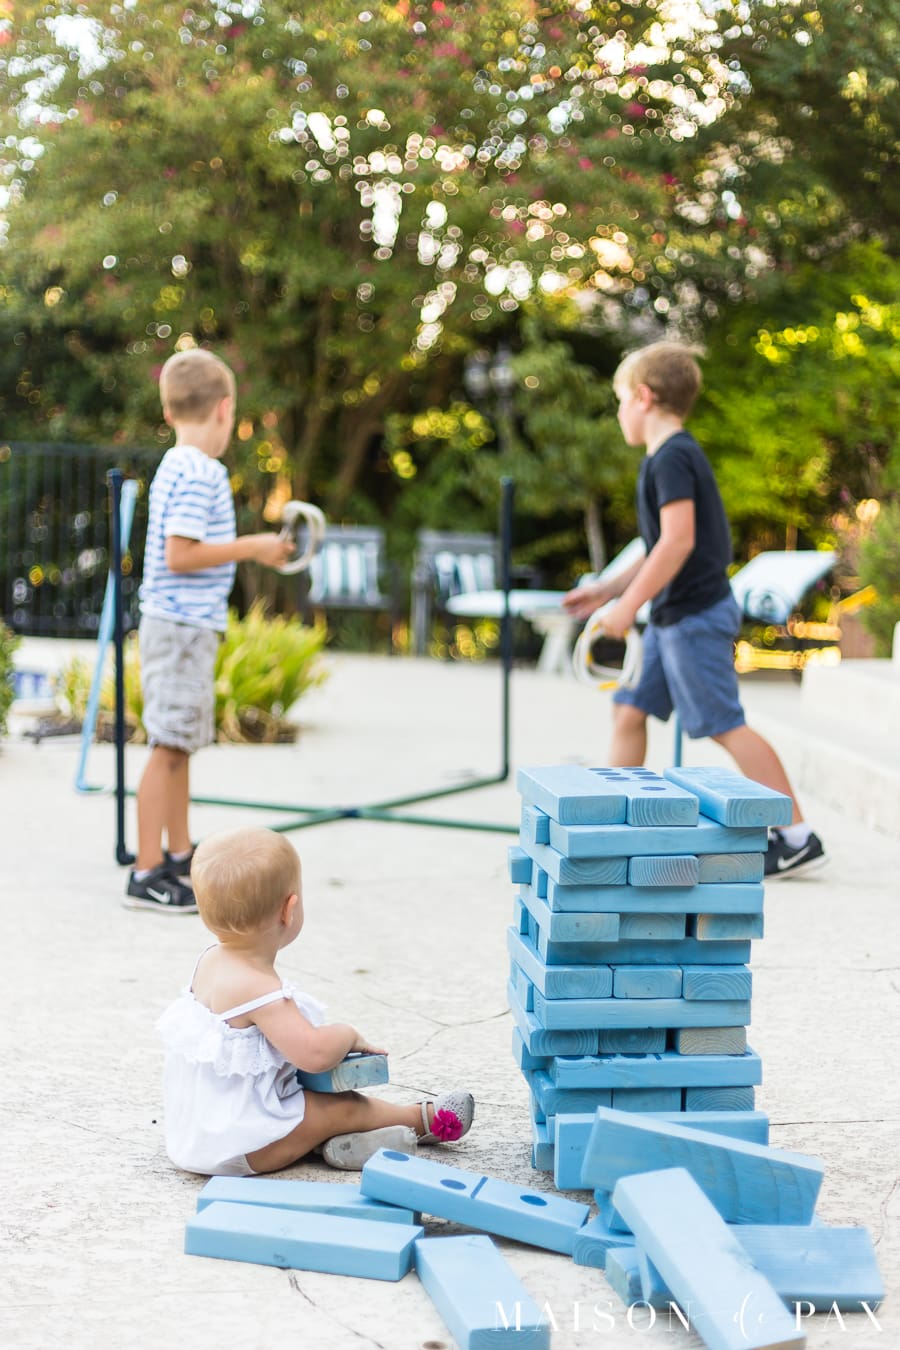 Make giant yard games with your kids: find this and other family projects plus tips for completing project with kids! #familyfun #familyproject #outdoorgames #kidfriendlyproject #diyproject